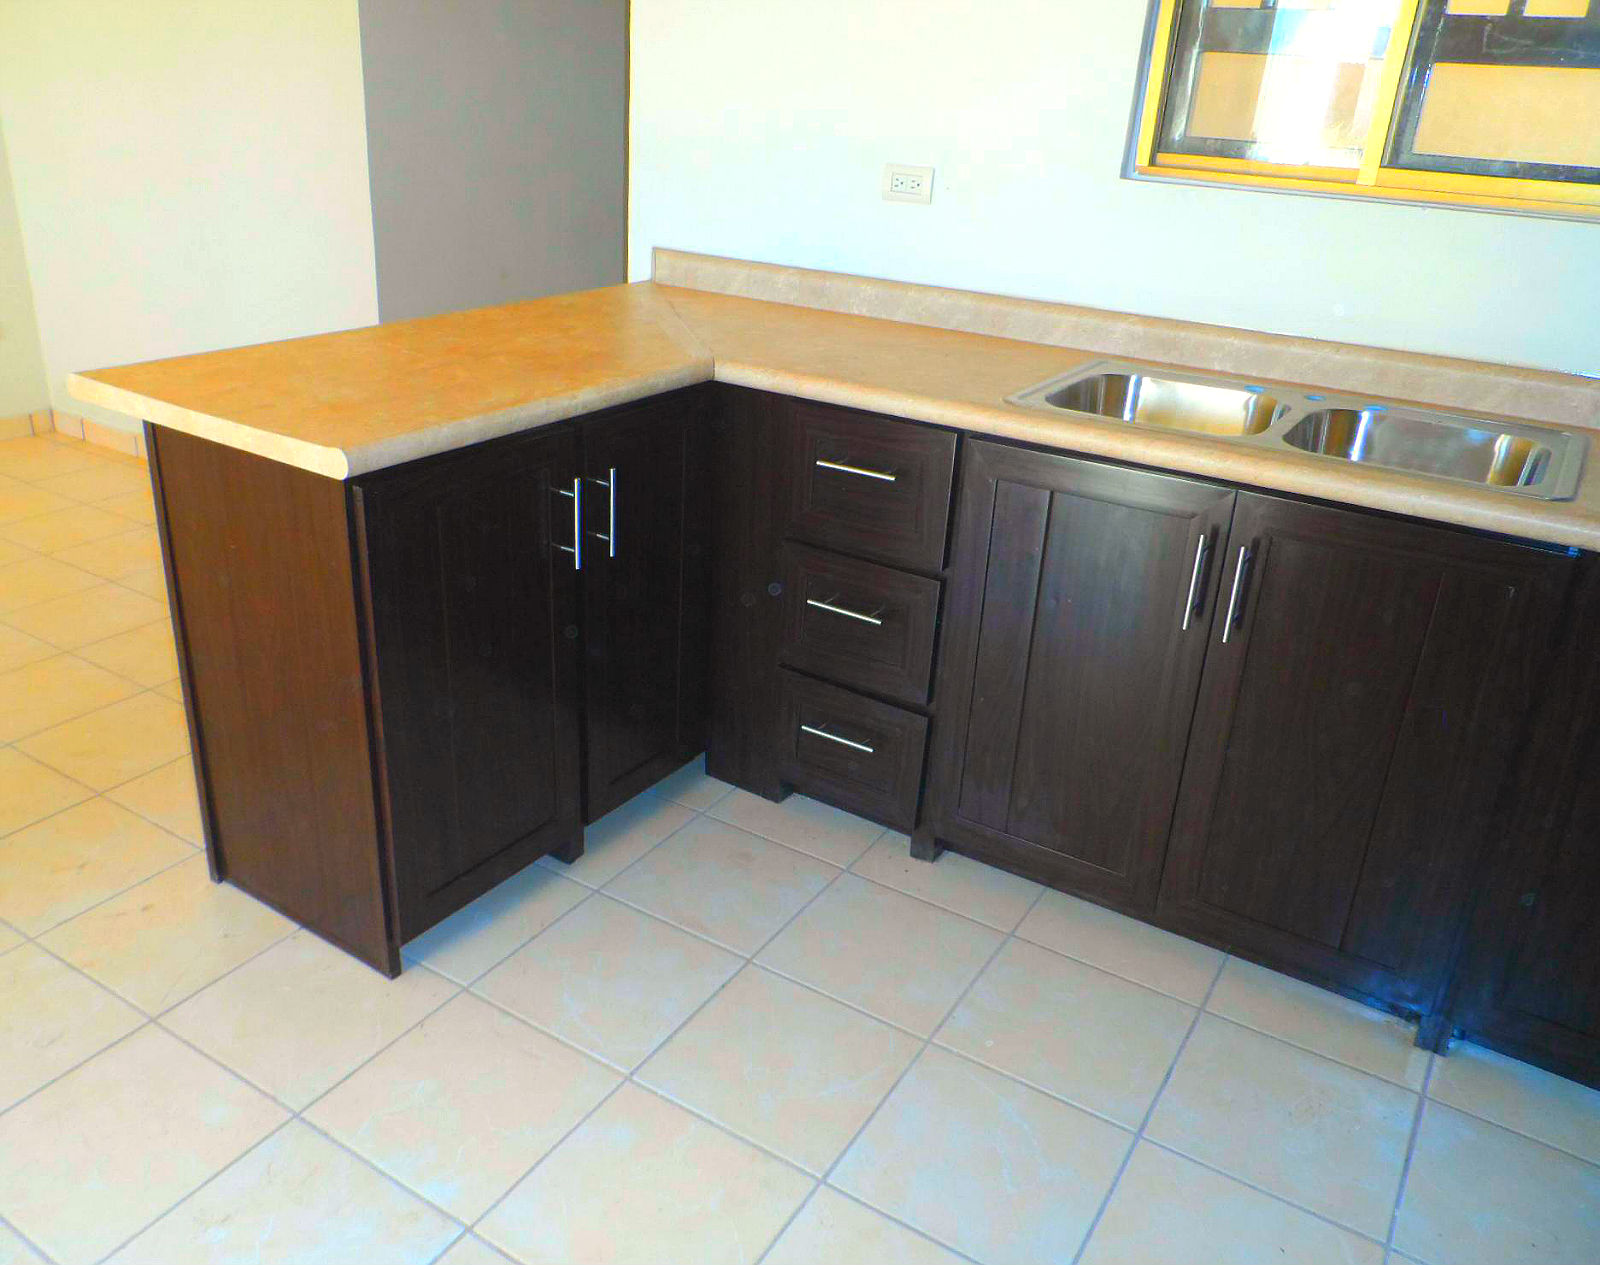 plastic bathroom cabinets rigid plastic kitchen cabinets